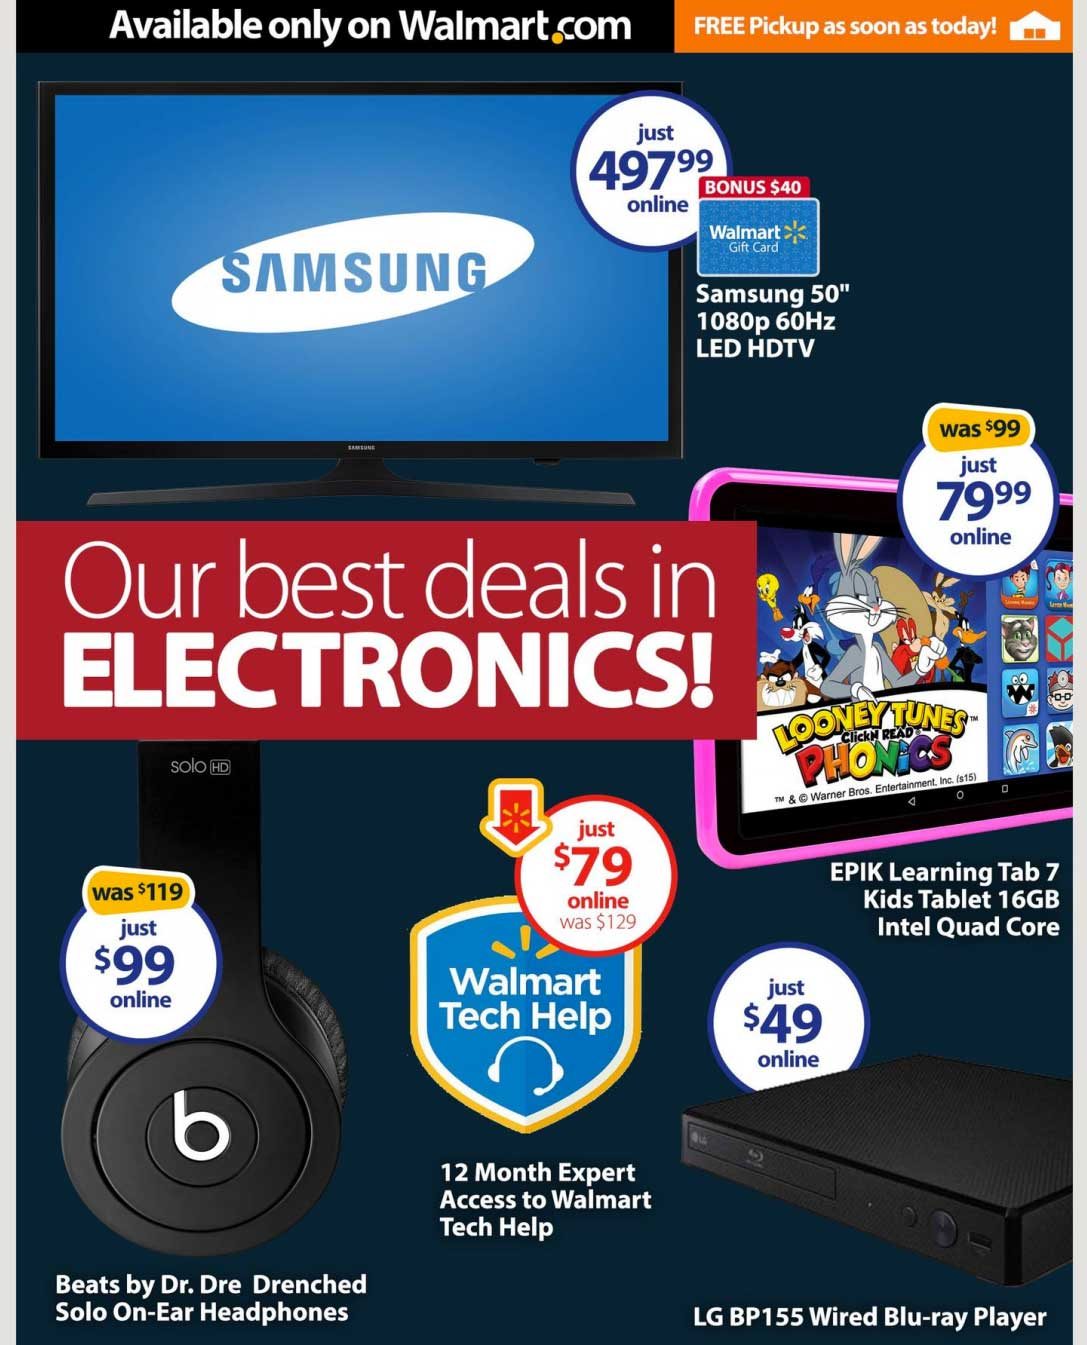 Cyber Monday Week Hottest Walmart Deals 2015 tech images